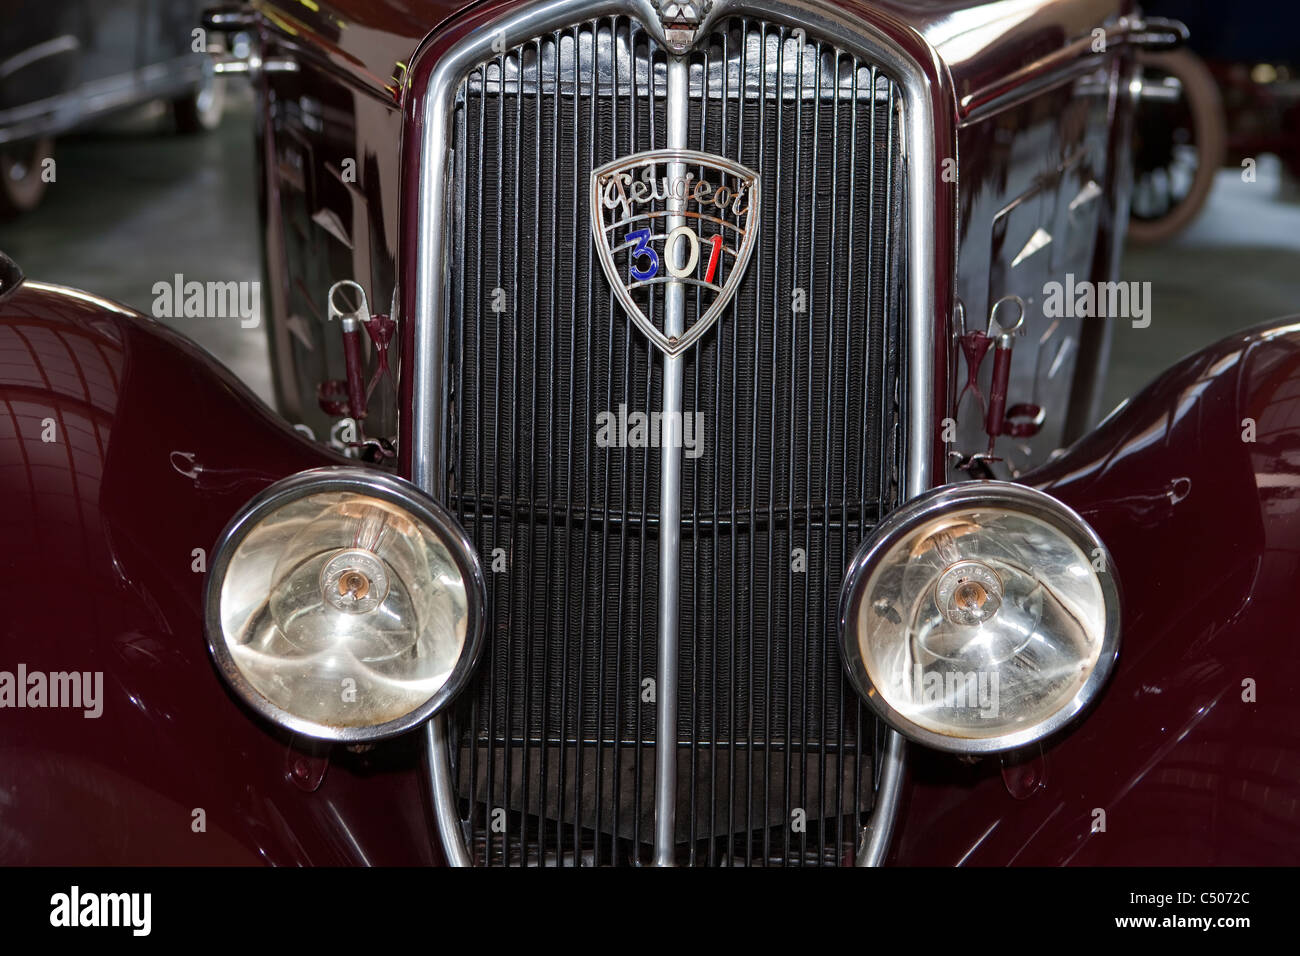 Detail, Peugeot 301 D coupe from 1936 - Stock Image